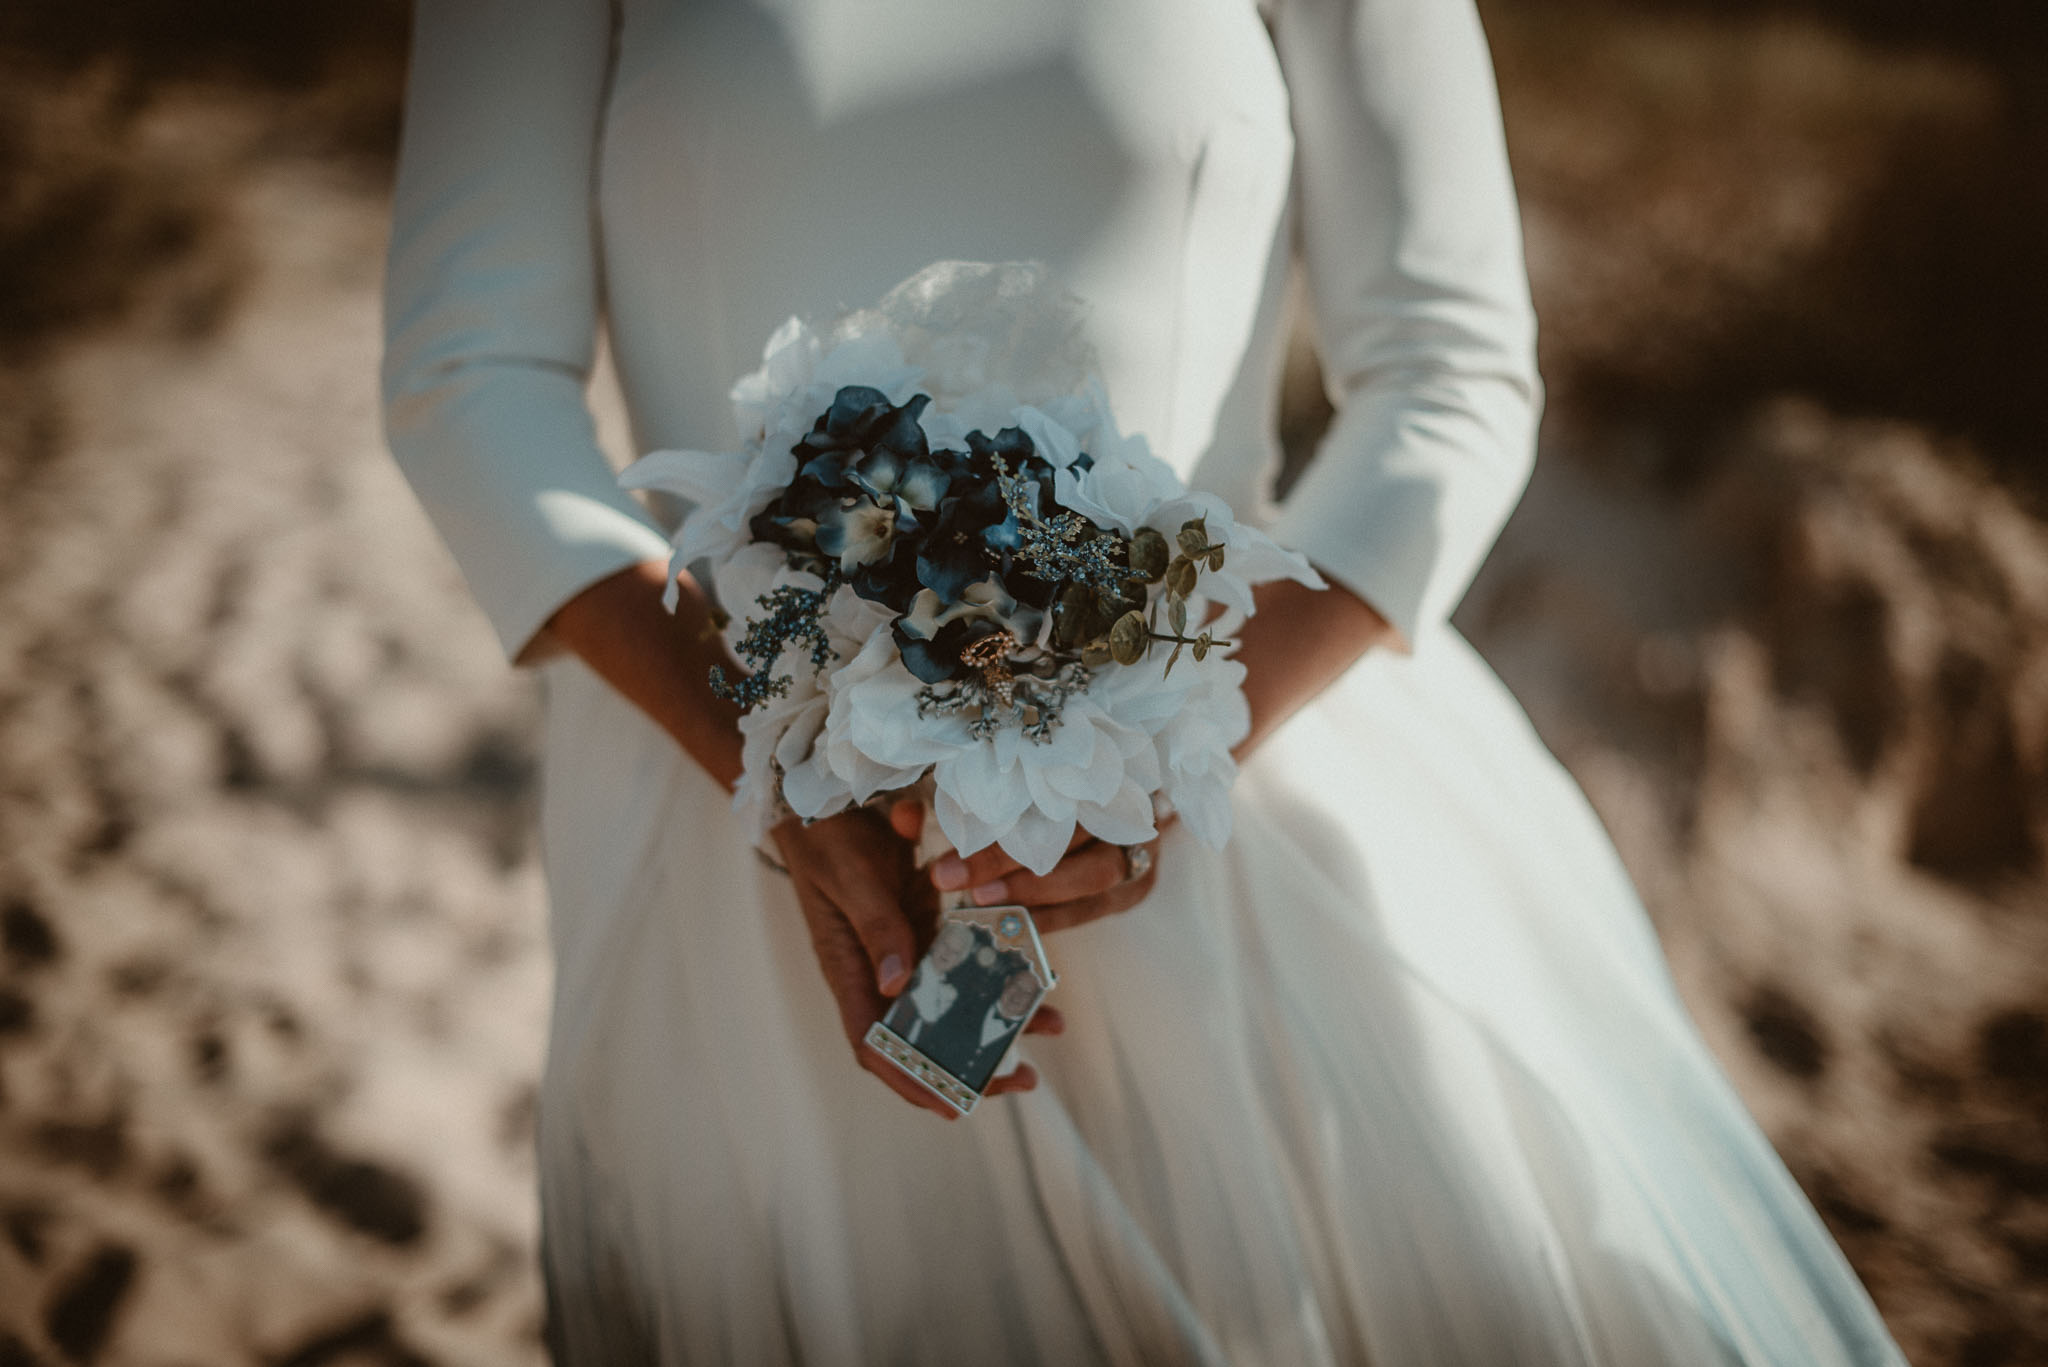 Bridal bouquet held in brides hands with photo of her late grandparents attached.